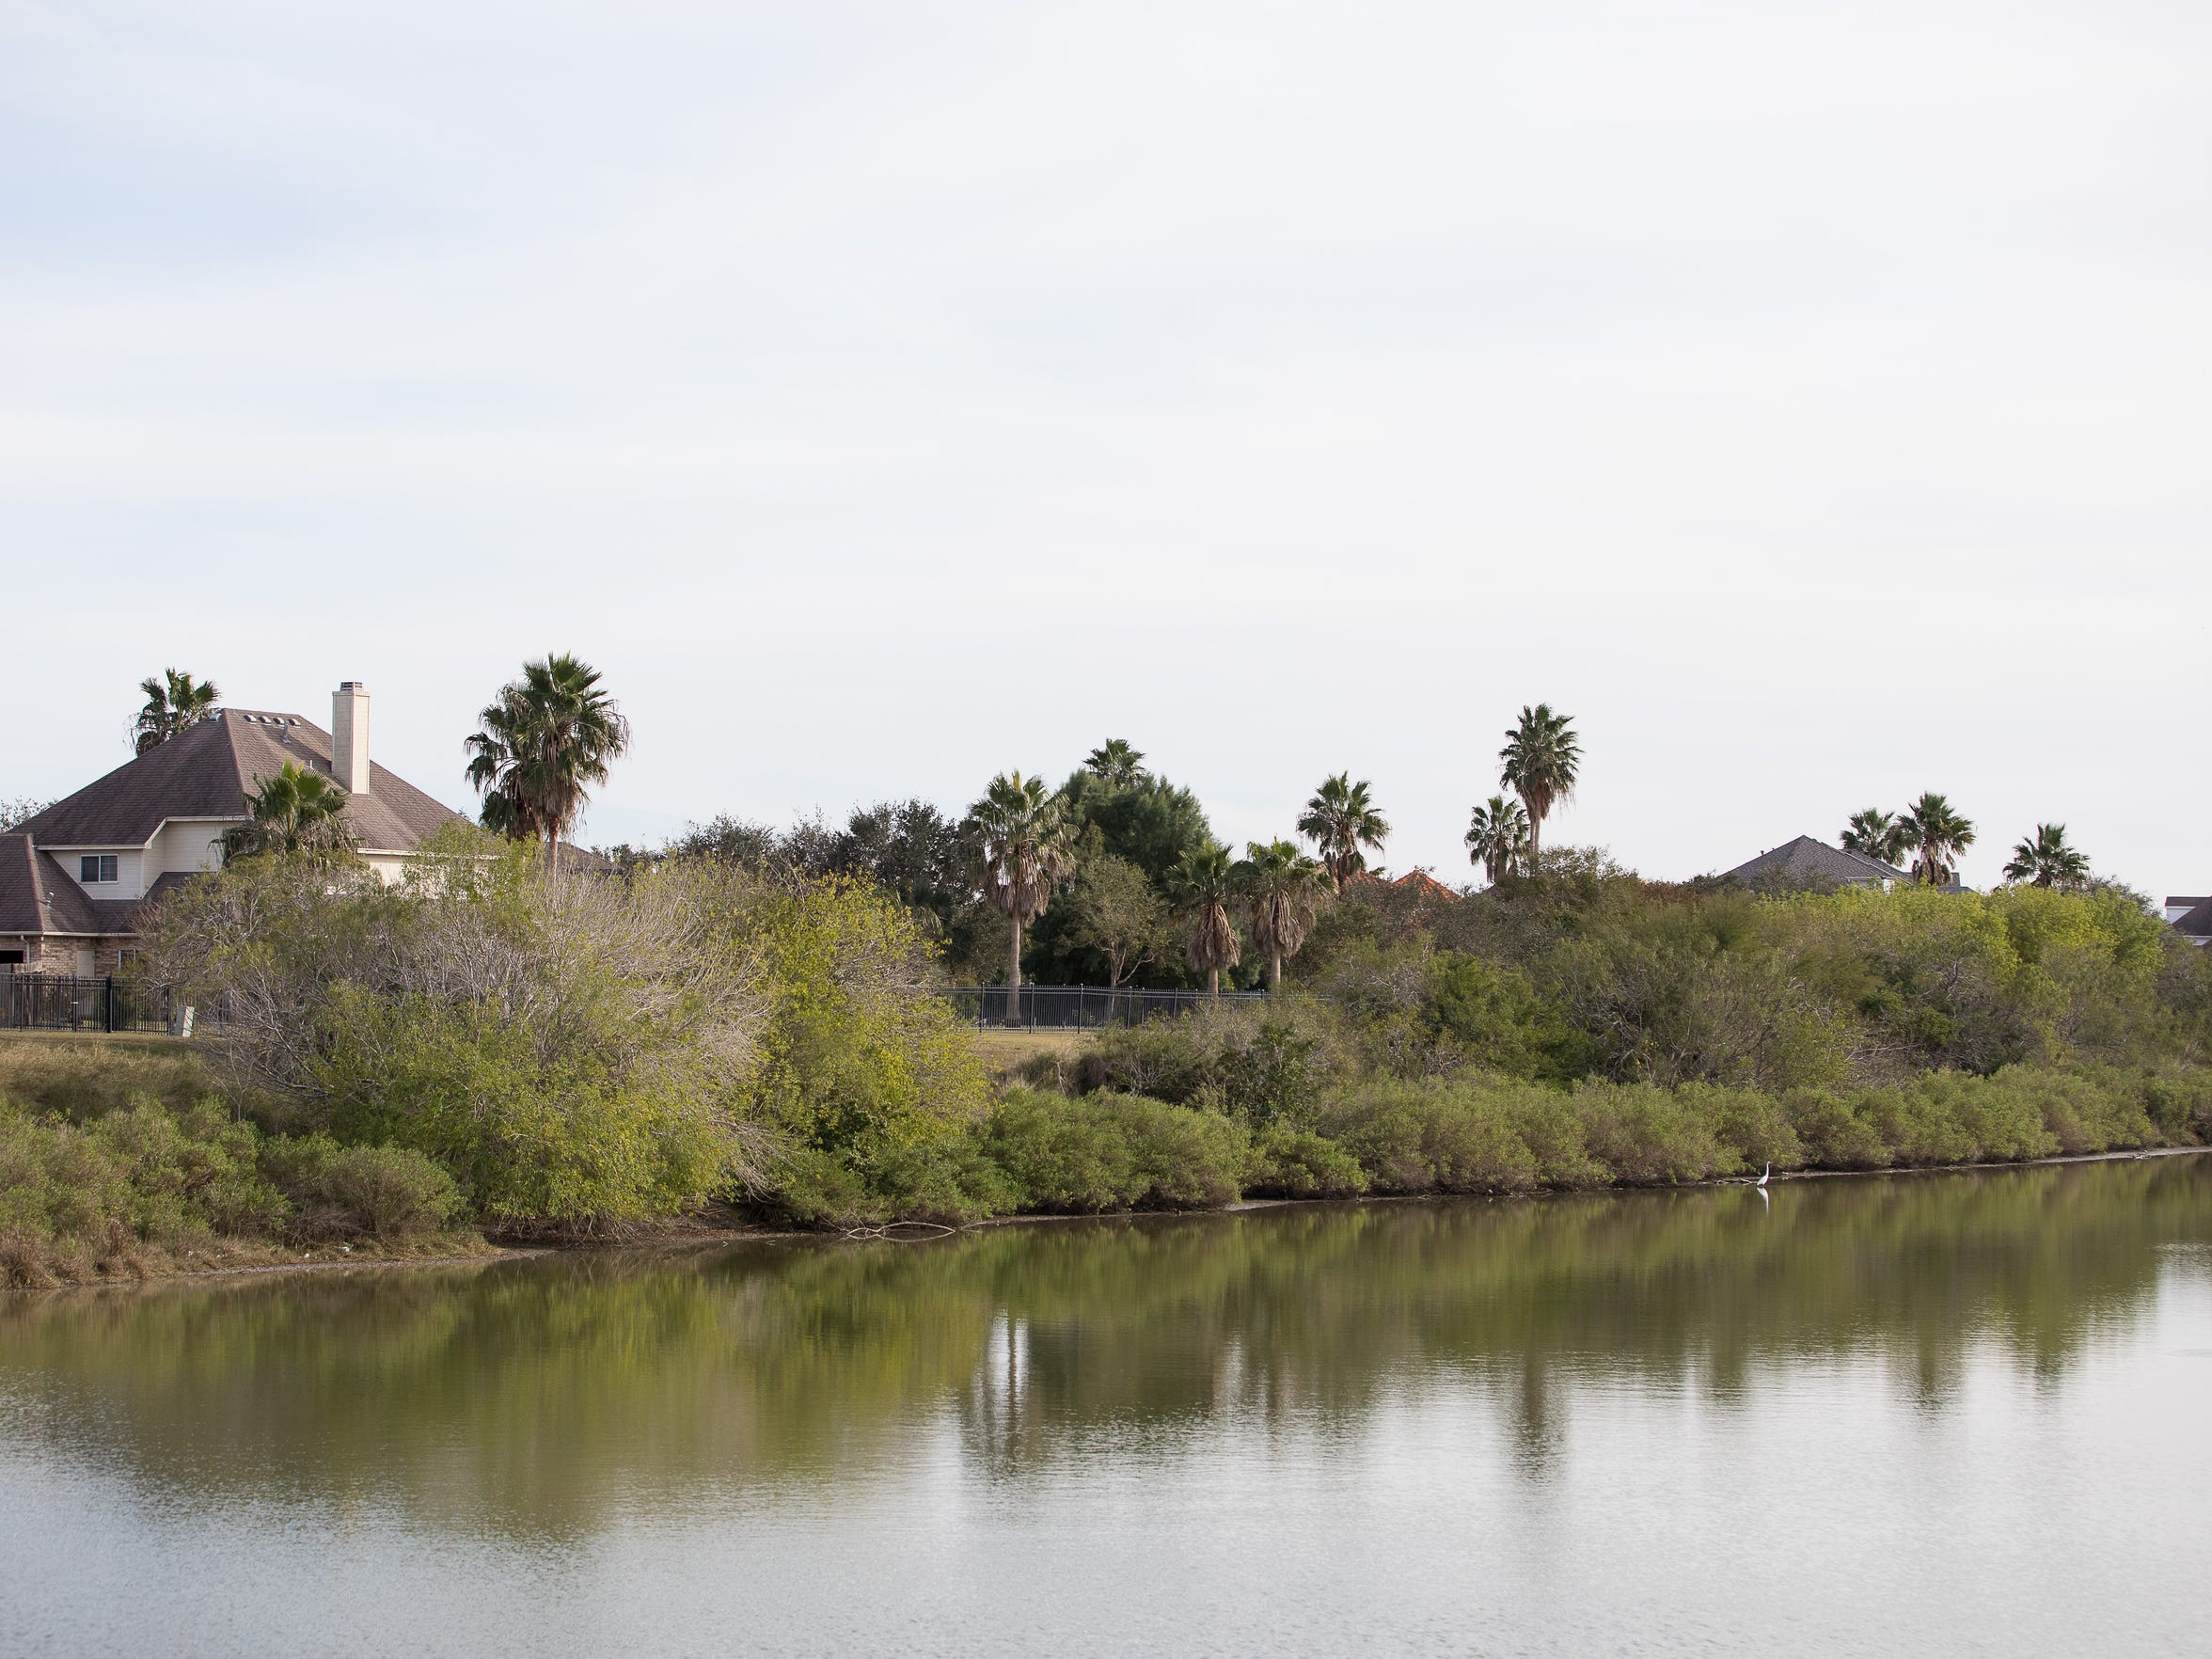 A number of homes have been built along Oso Creek, where some areas have historically flooded. In proposed flood maps, several sections along the creek are identified as being at higher-risk of flooding than shown in maps issued in 1985.